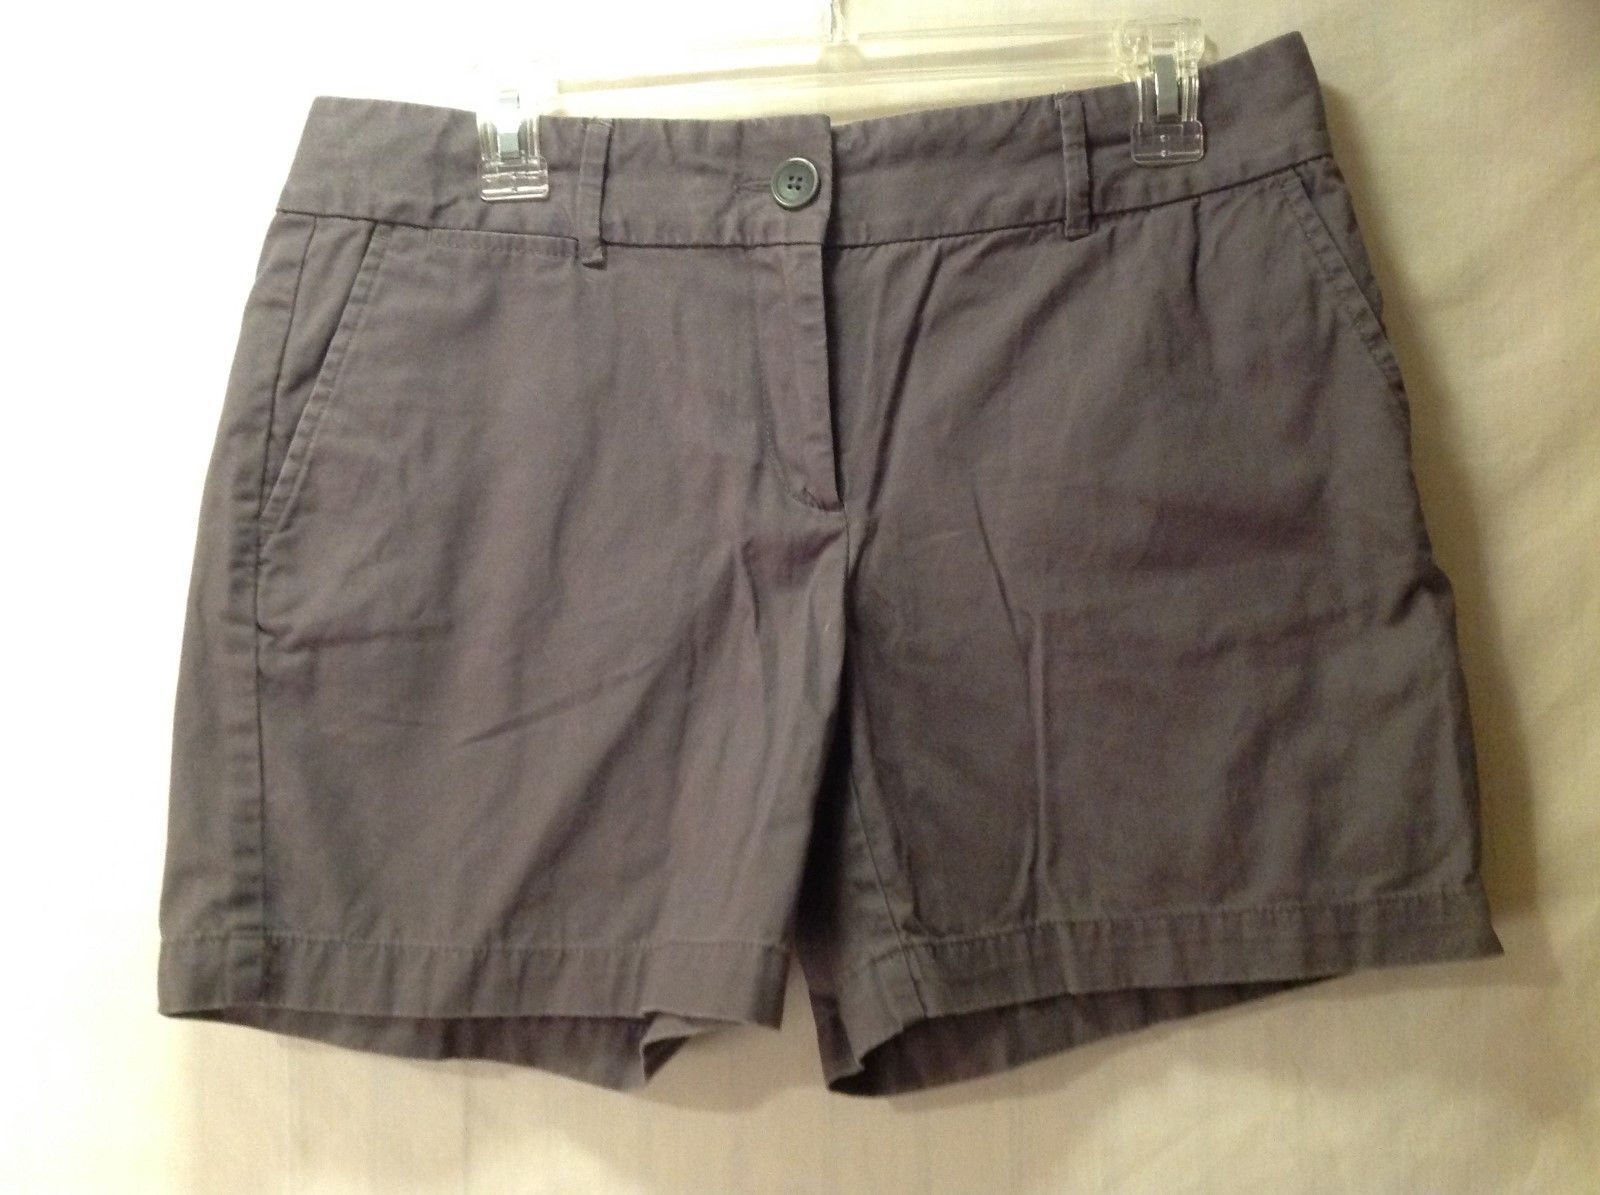 Ann Taylor LOFT Simple Gray Shorts Size 6